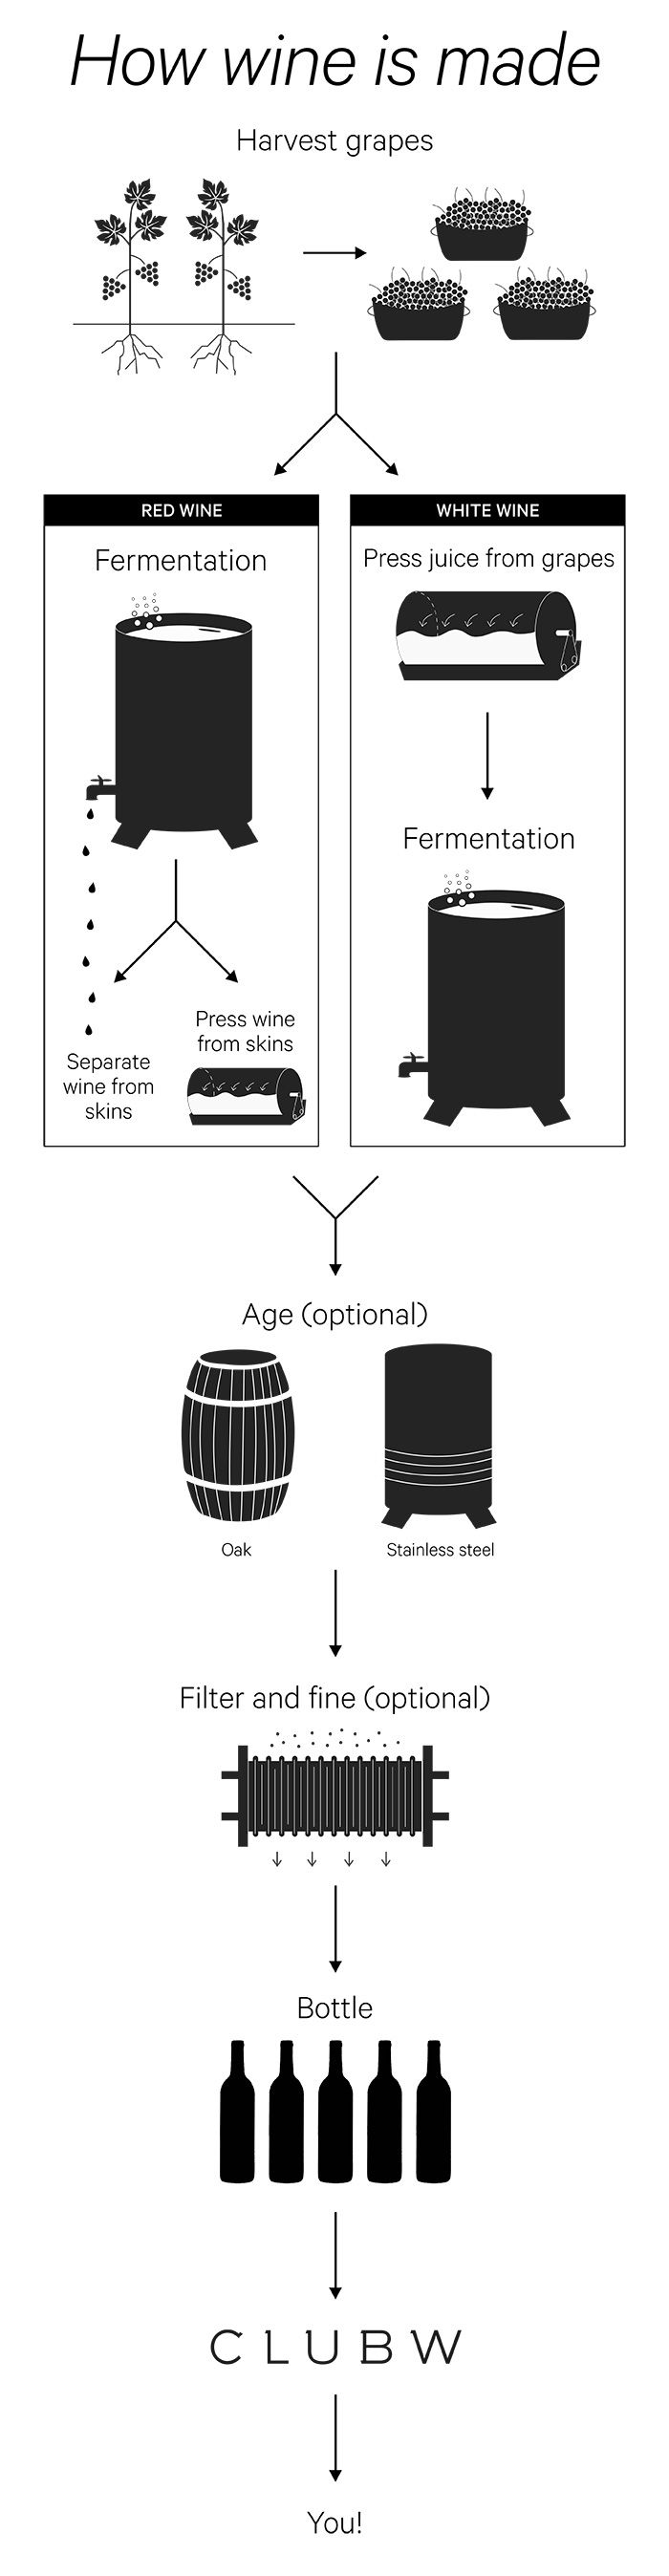 Infographic How Wine Is Made The Winc Blog Wine Making Supplies Wine And Beer Wine Education